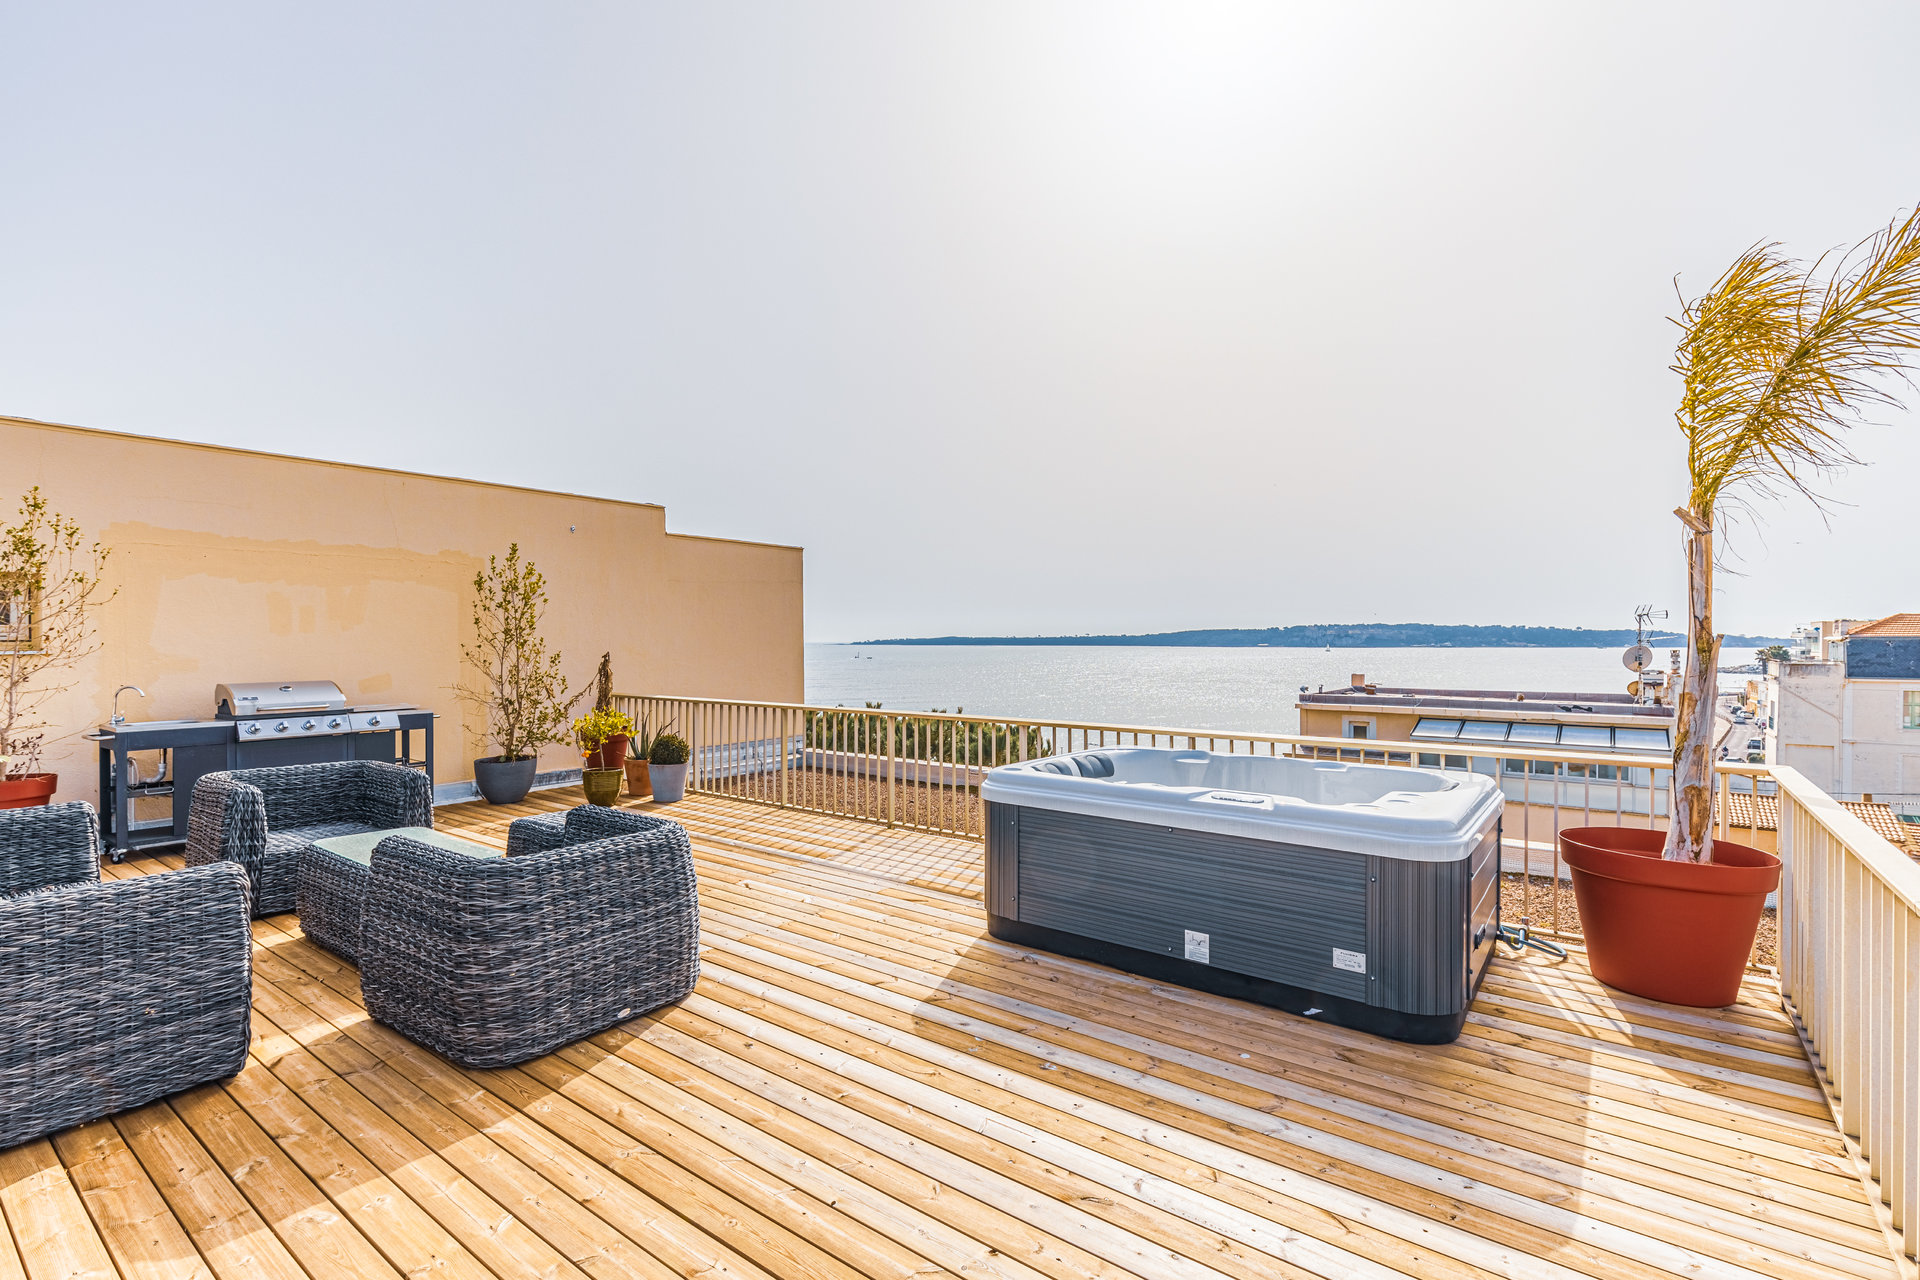 Superb three bed, roof terrace, sea view, garage, cellar, Palm Beach area in Cannes